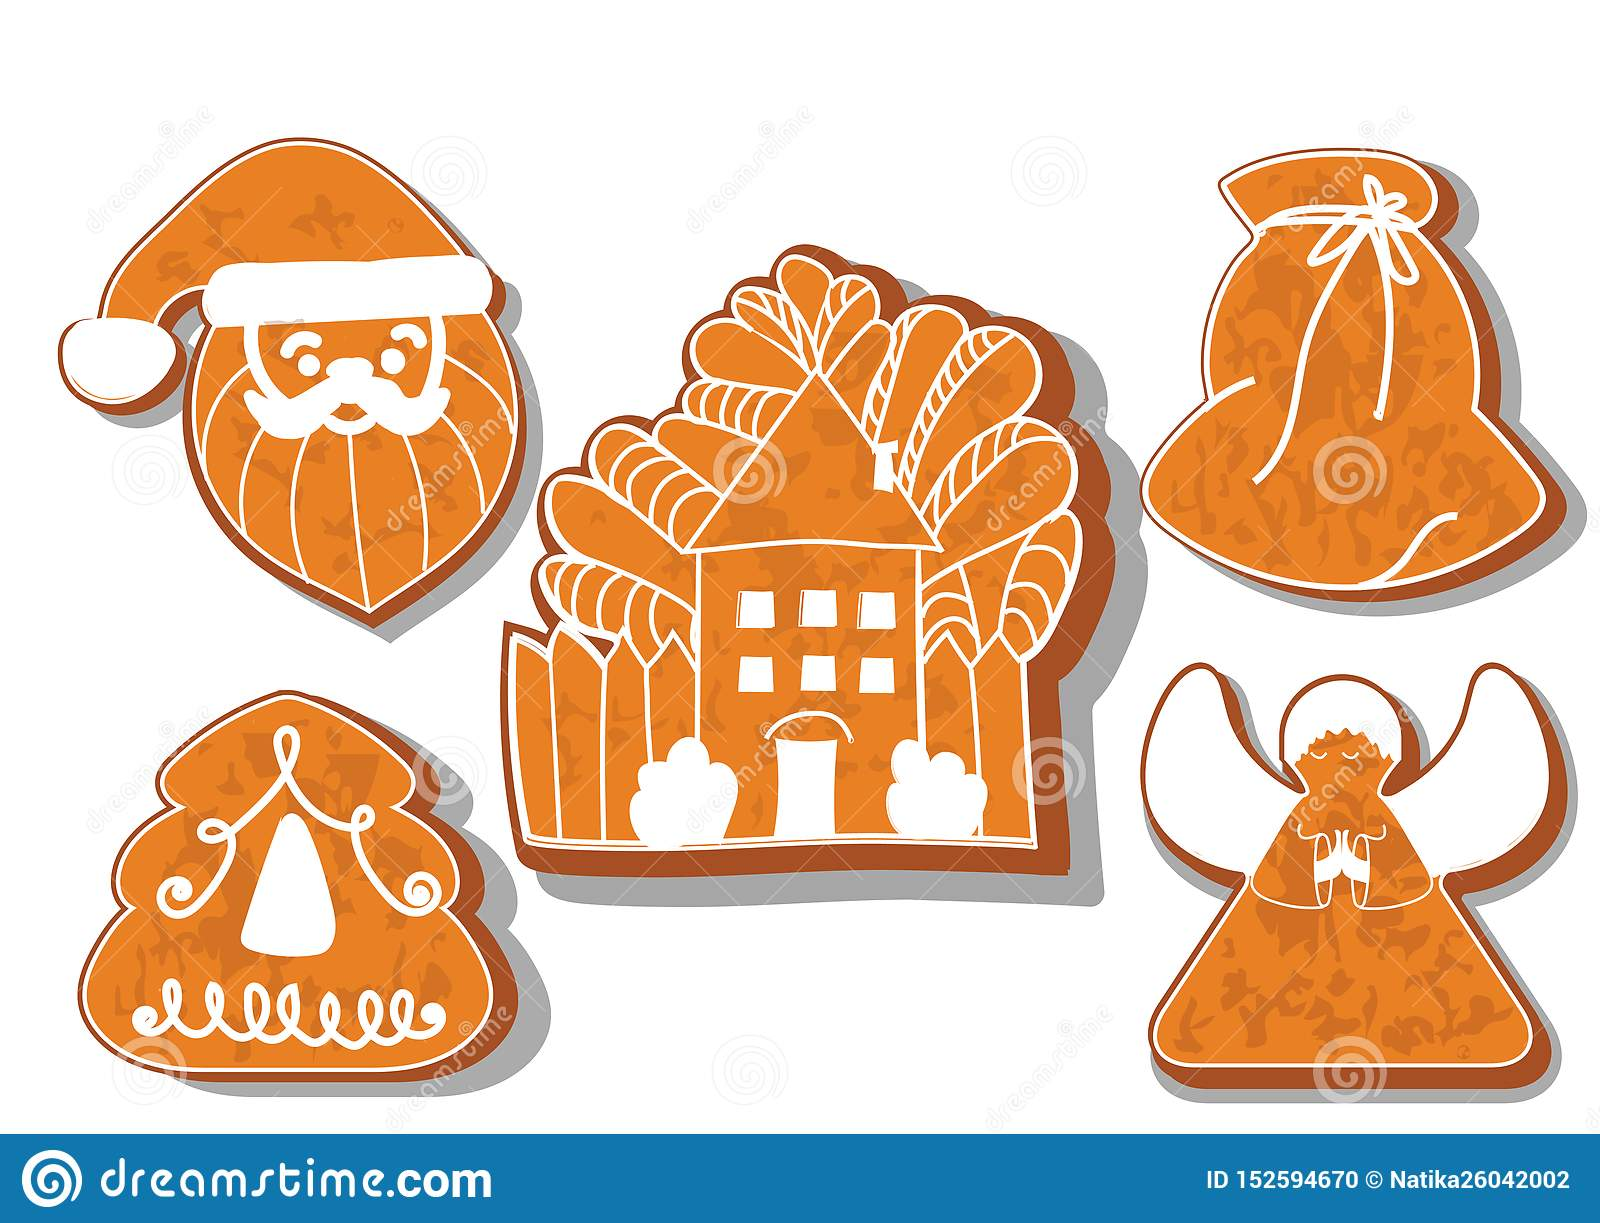 Set of Christmas cookies. Set of different gingerbread cookies for Christmas. Christmas gingerbread Christmas characters